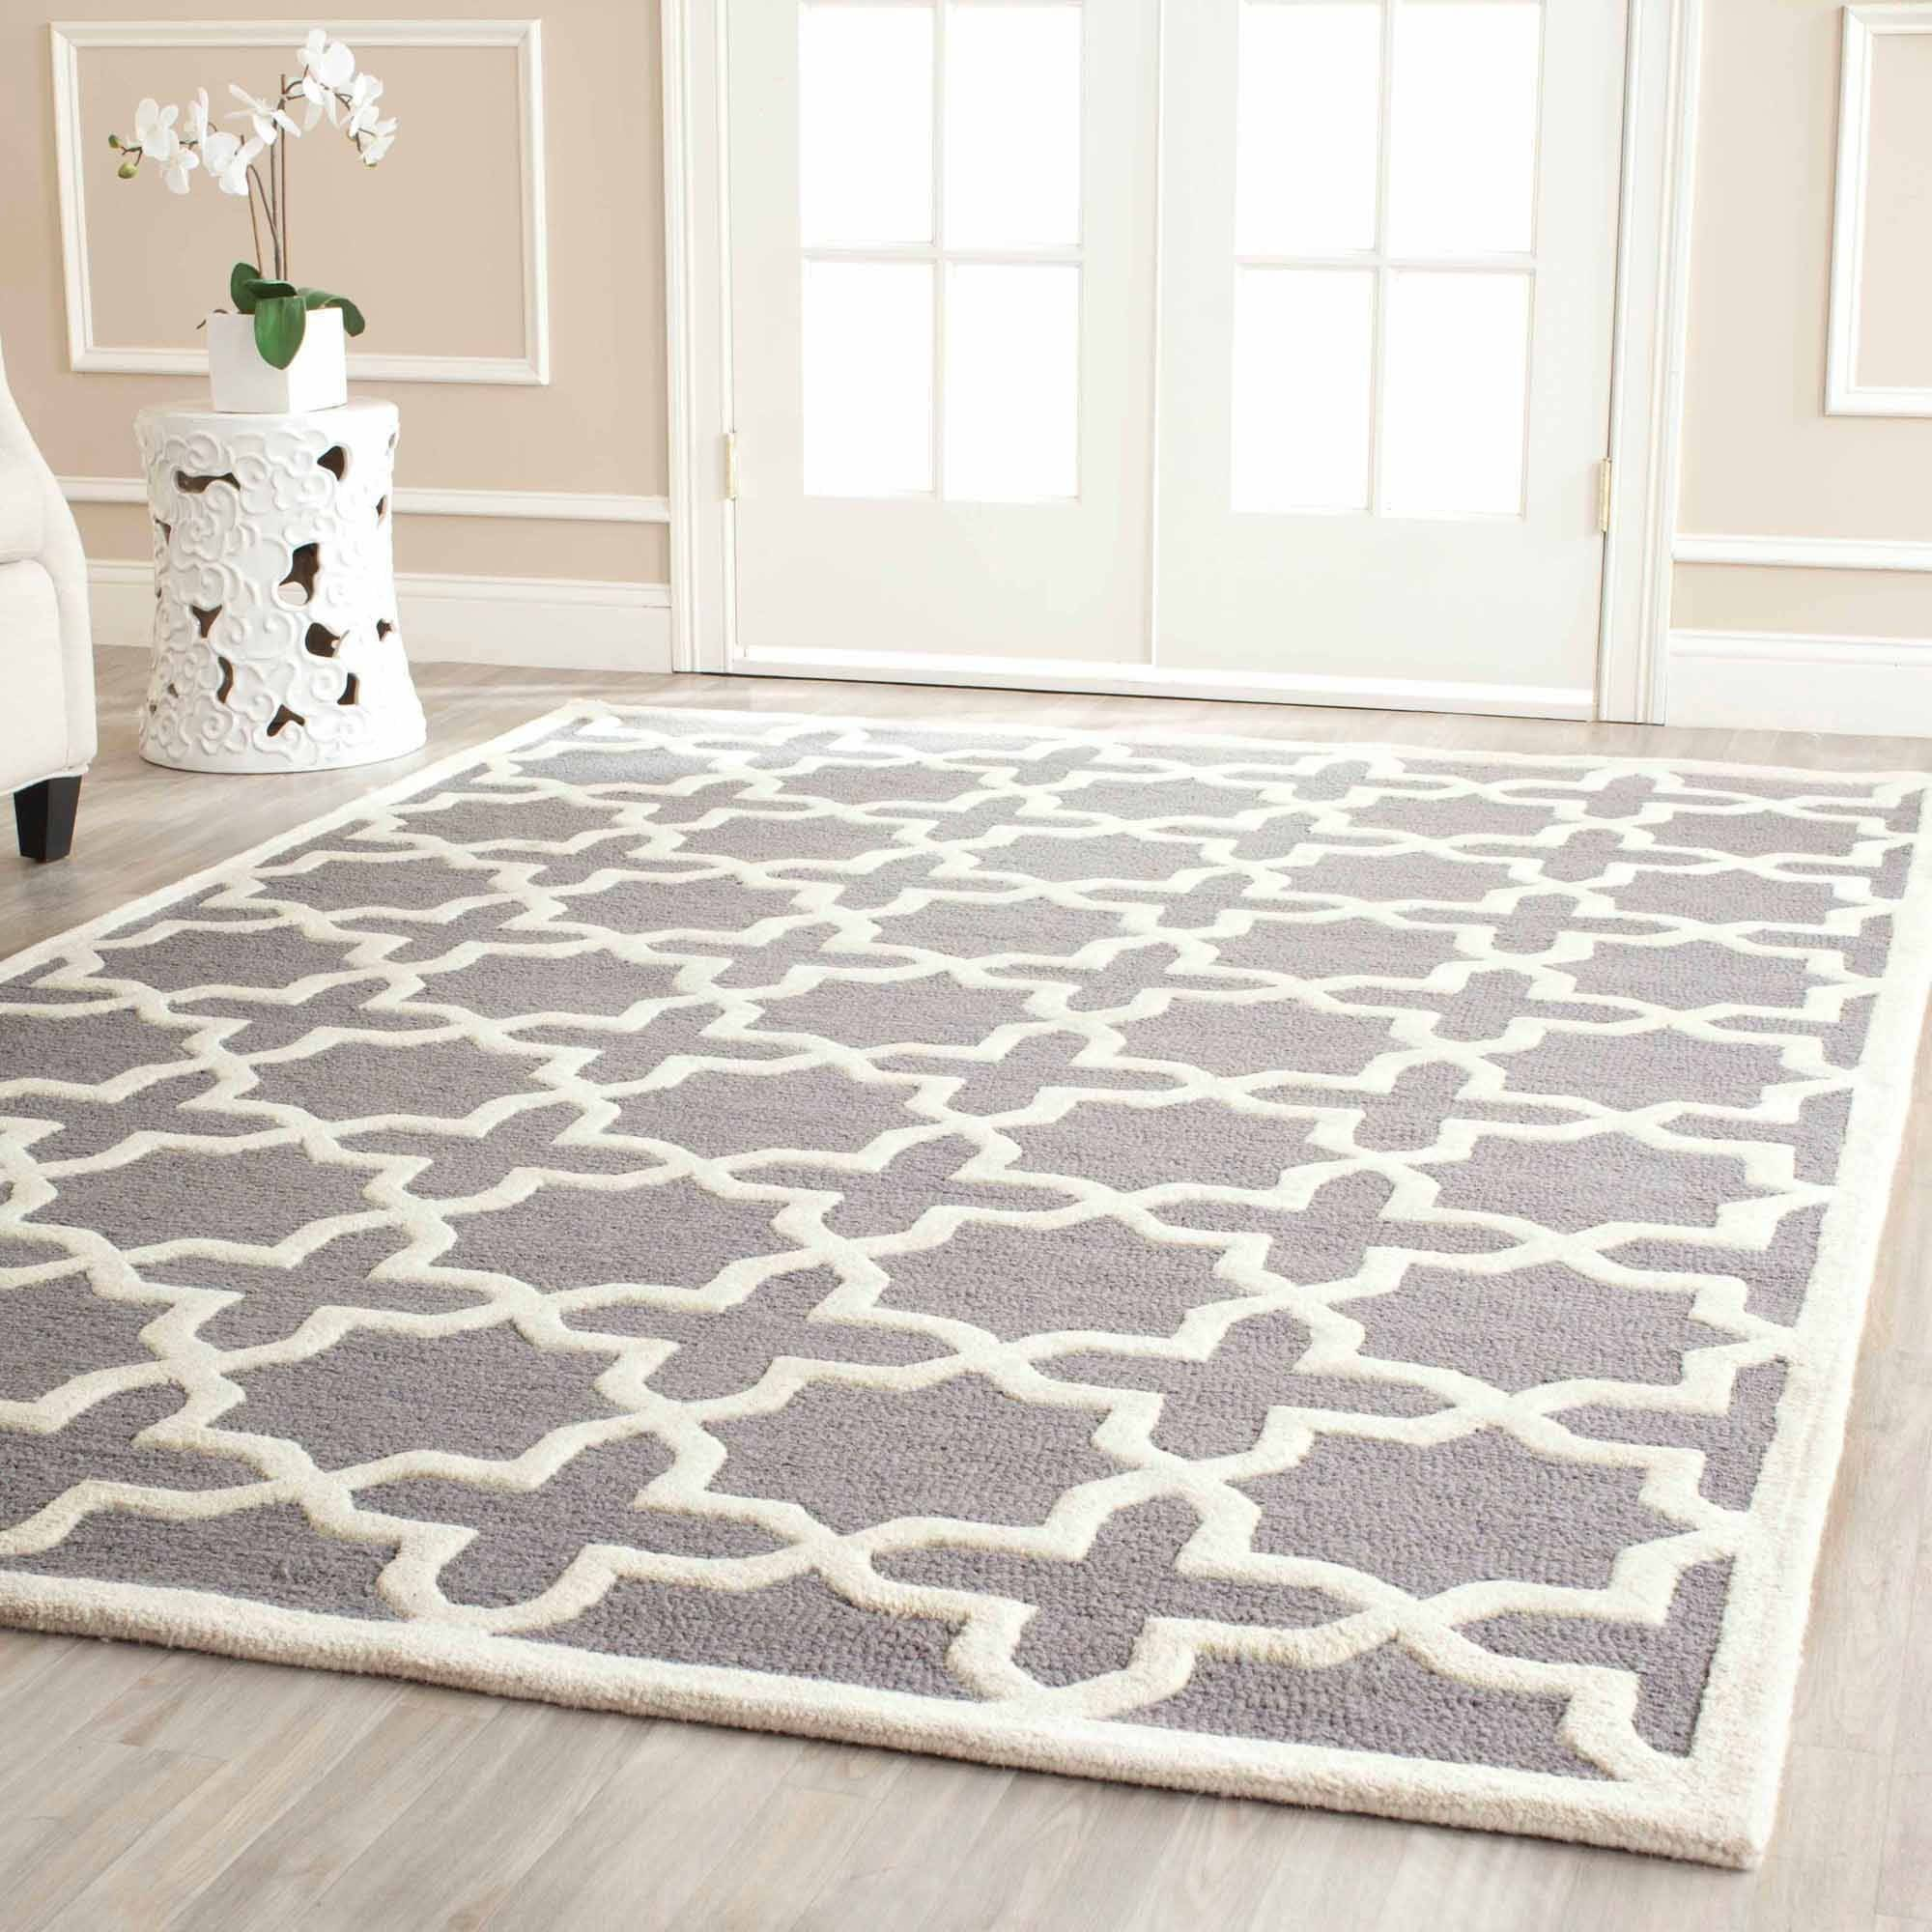 safavieh rugs safavieh cambridge liz hand tufted wool area rug or runner DKCQRSY